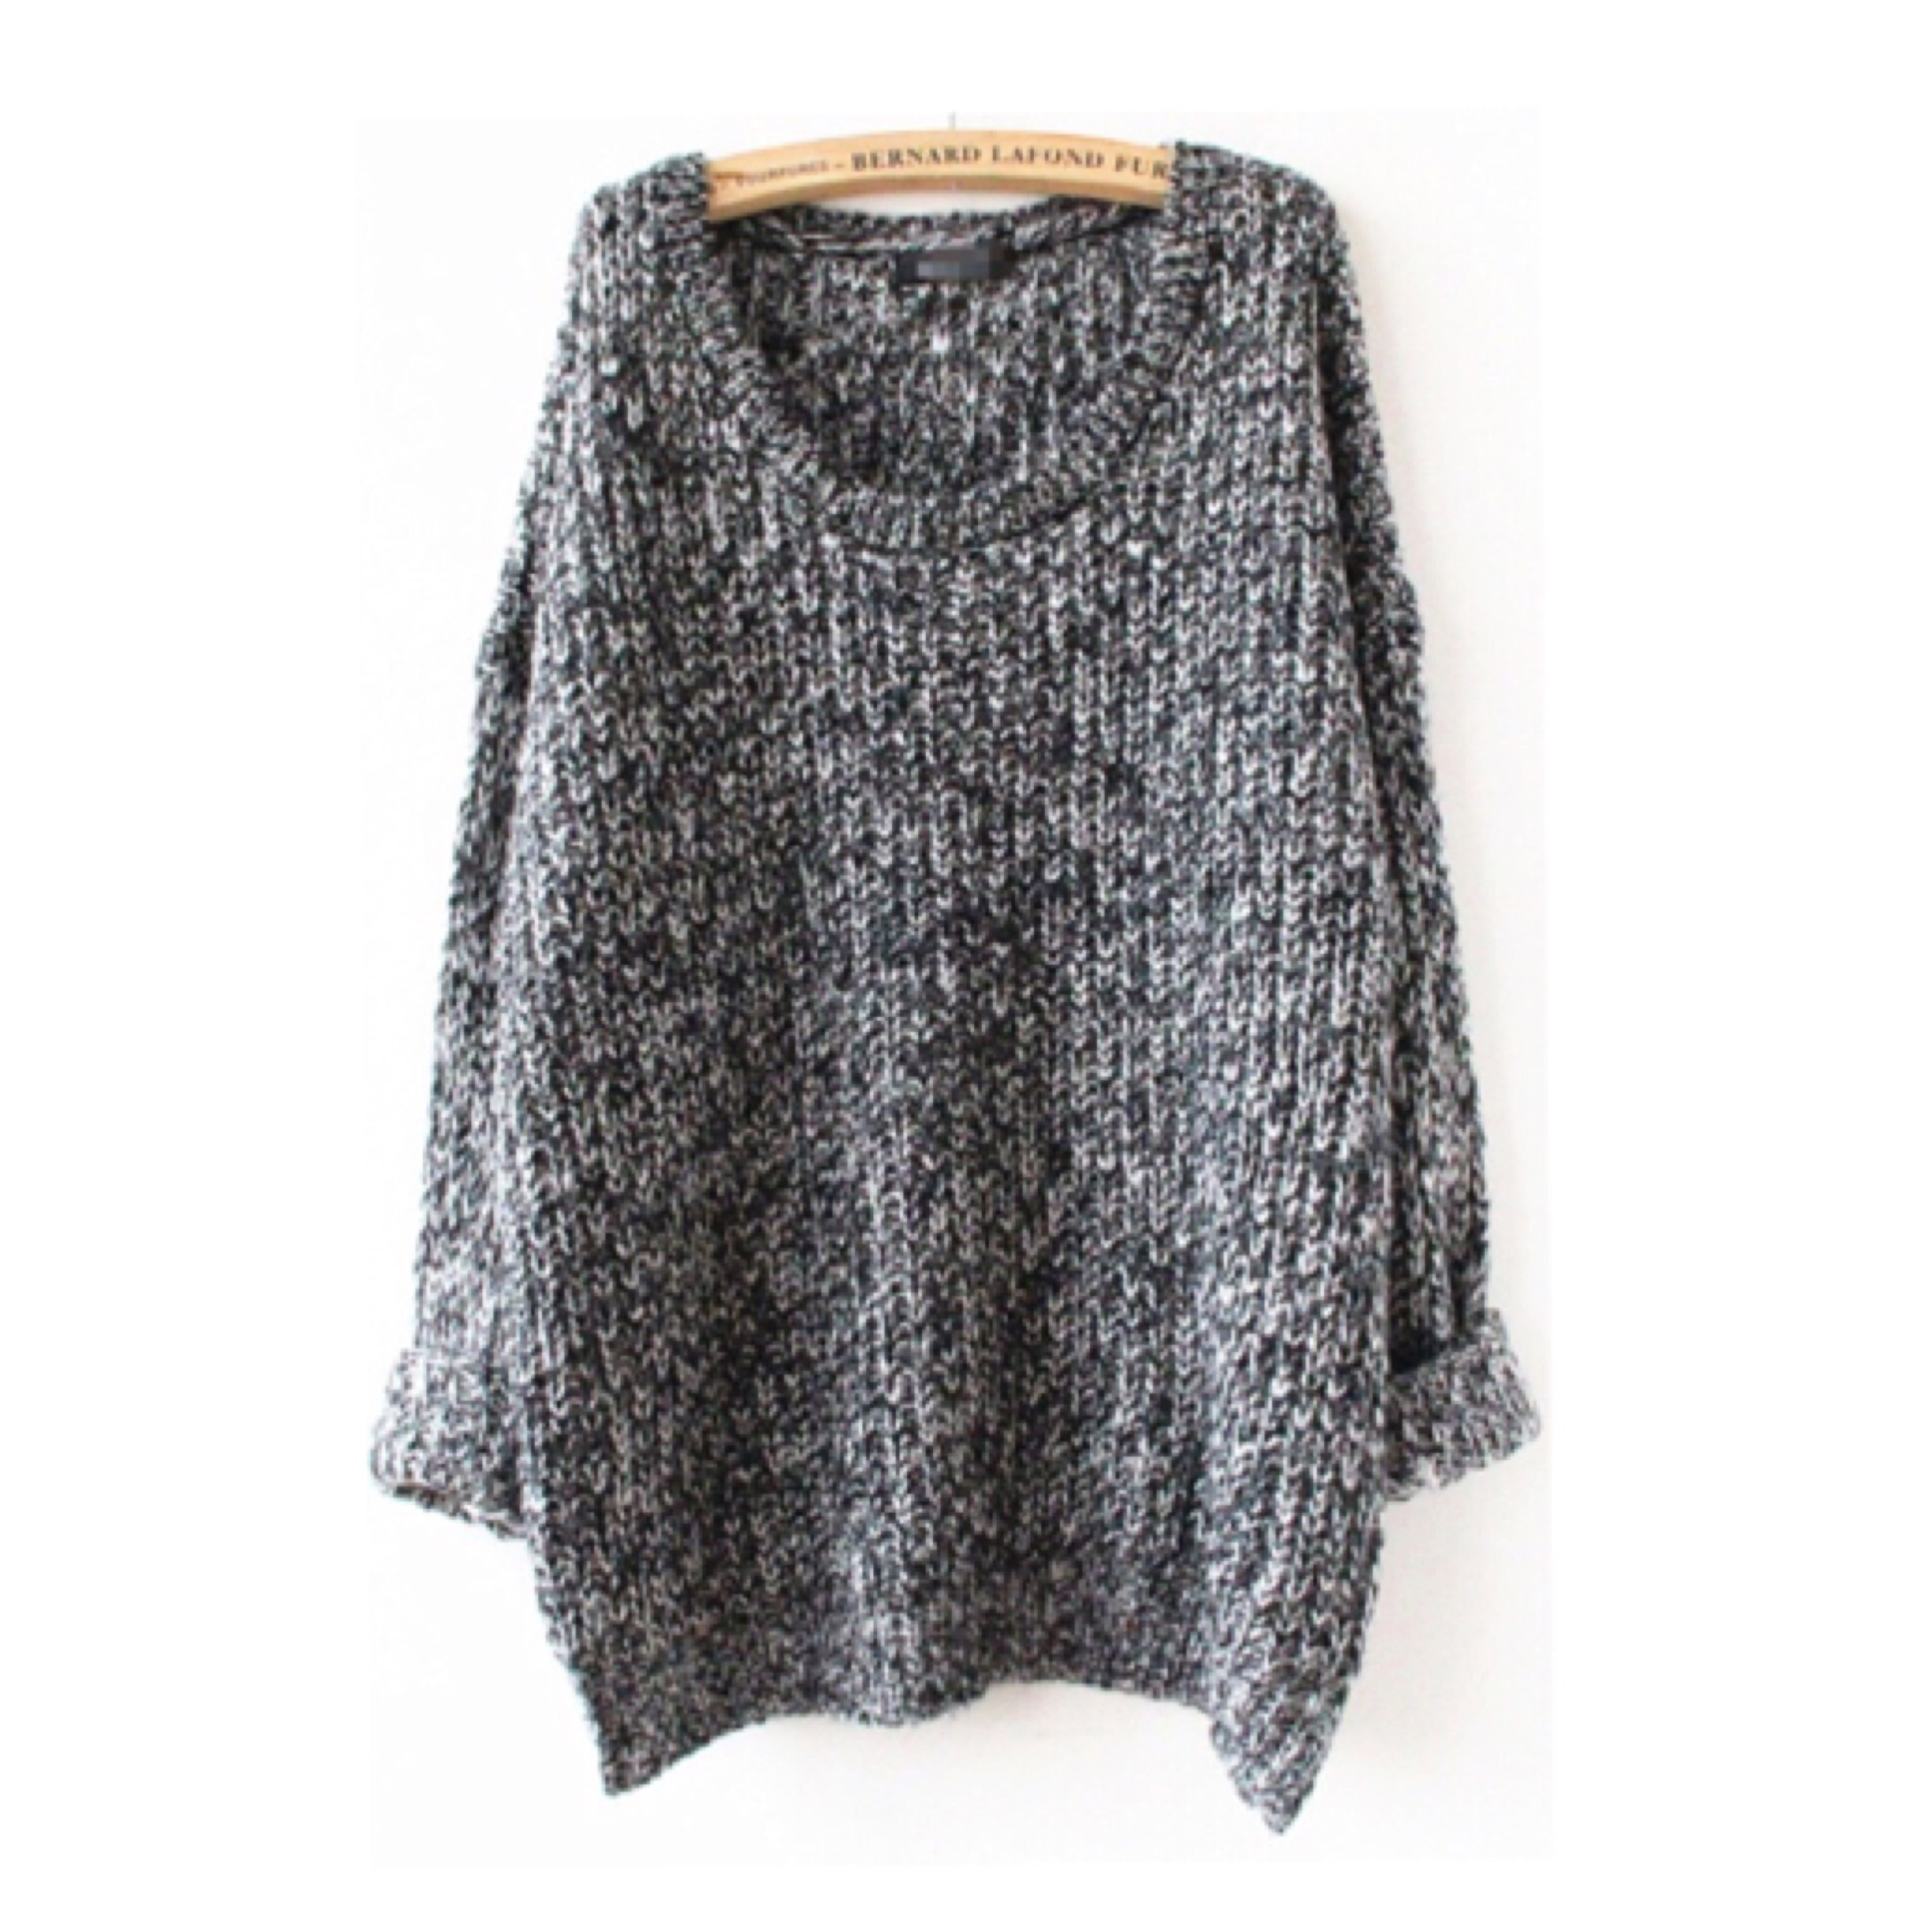 Grey sweater oversized knit pullover top